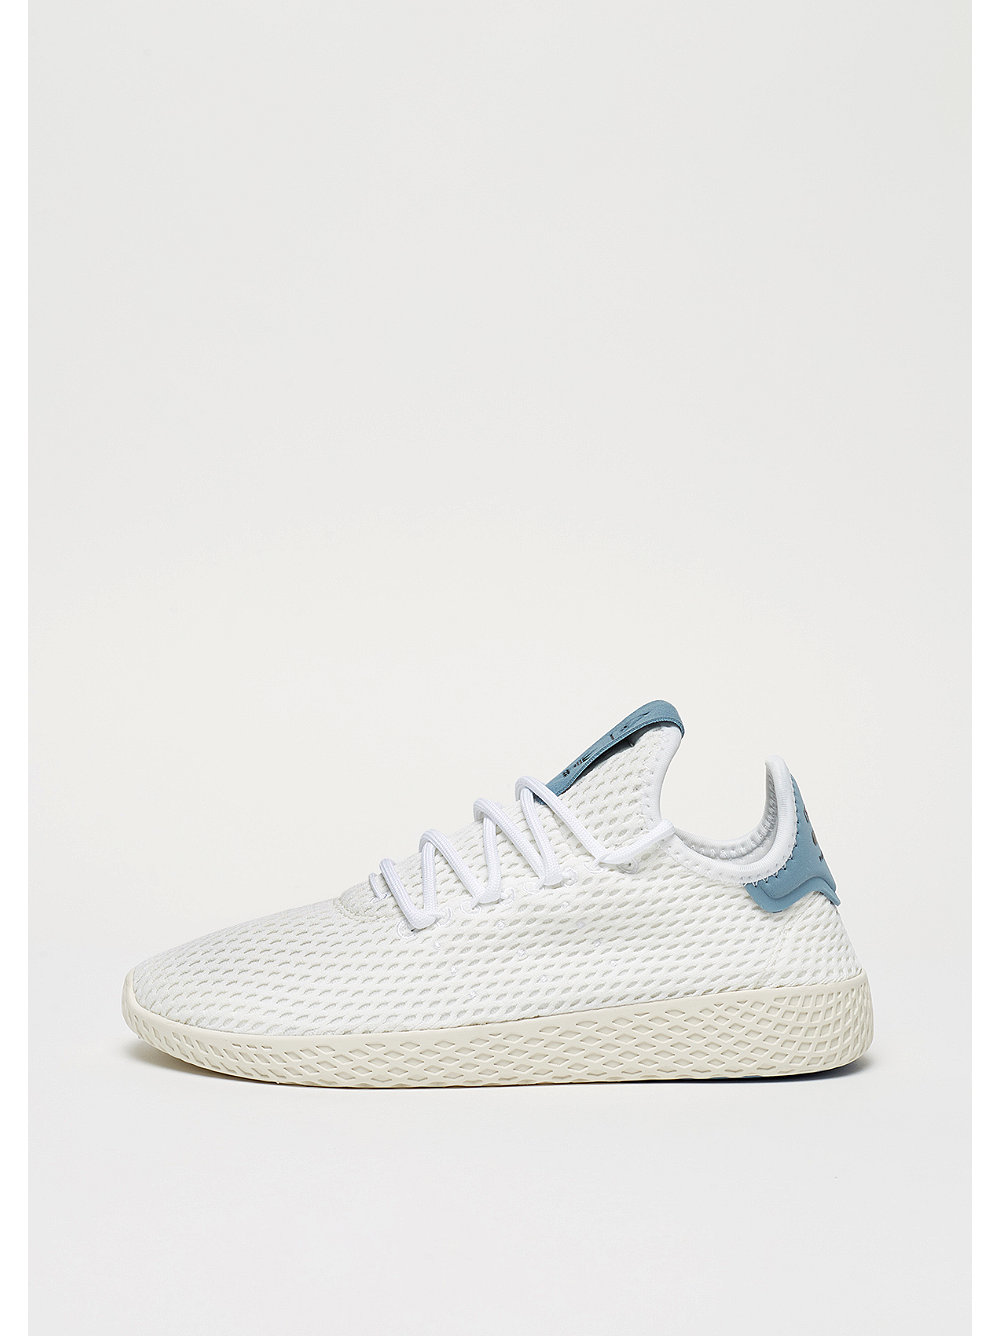 adidas pharrell williams tennis hu white white tacblue. Black Bedroom Furniture Sets. Home Design Ideas